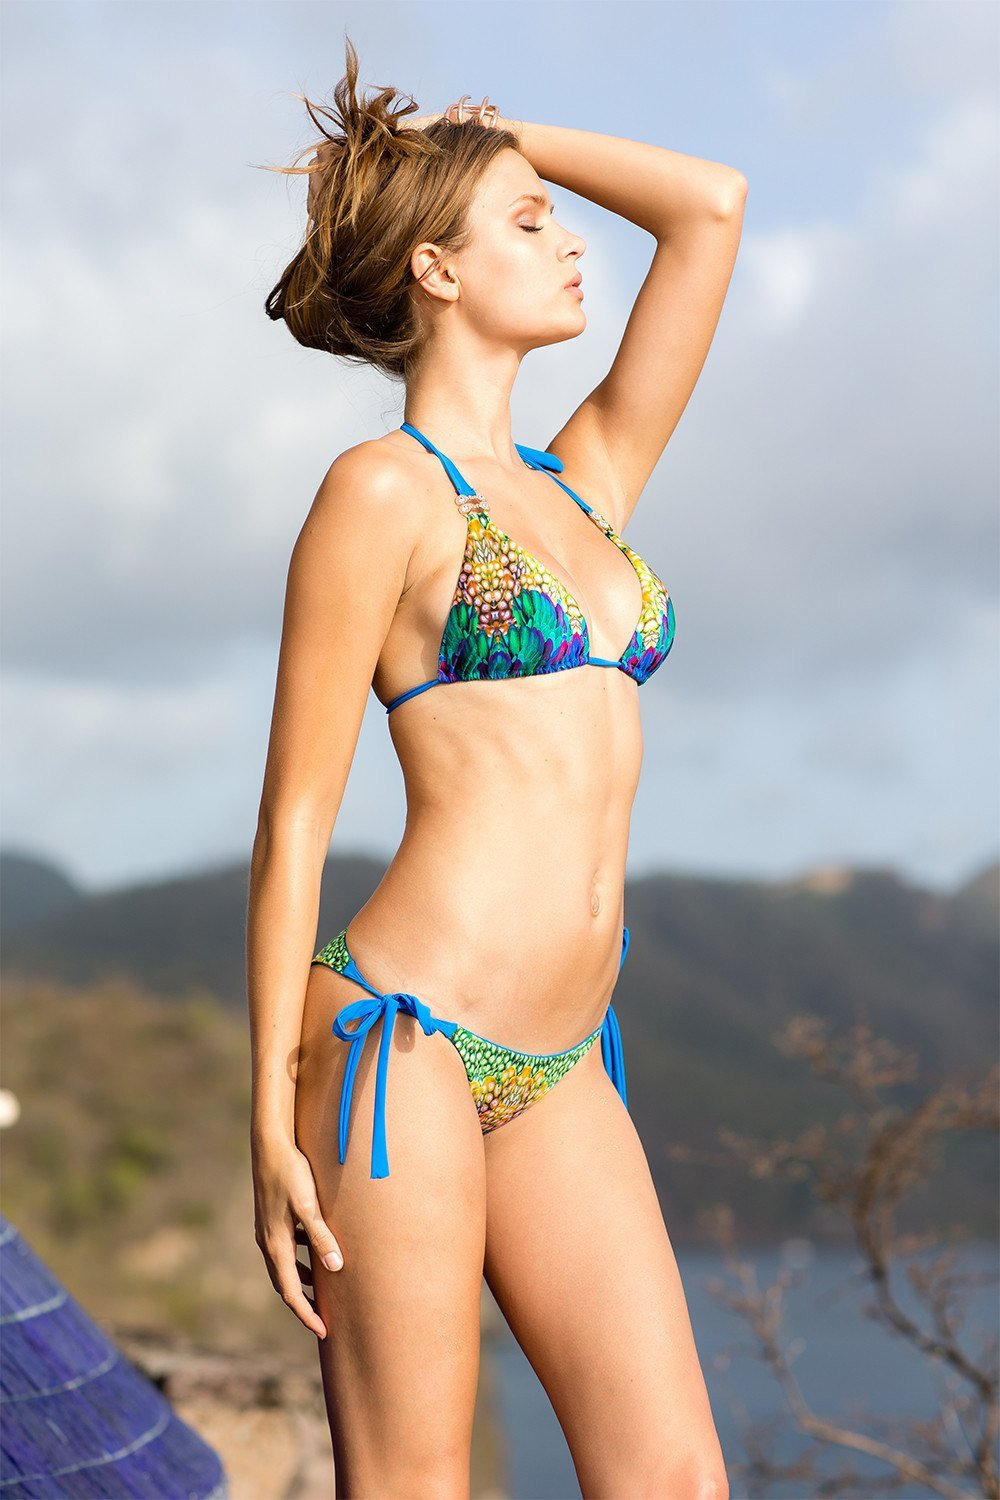 Sauvage Swimwear, Designer Swimwear from San Diego, CA made in usaJade Mountain Royal Blue Bikini, , Swim, sauvage swimwear, Sauvage - 3